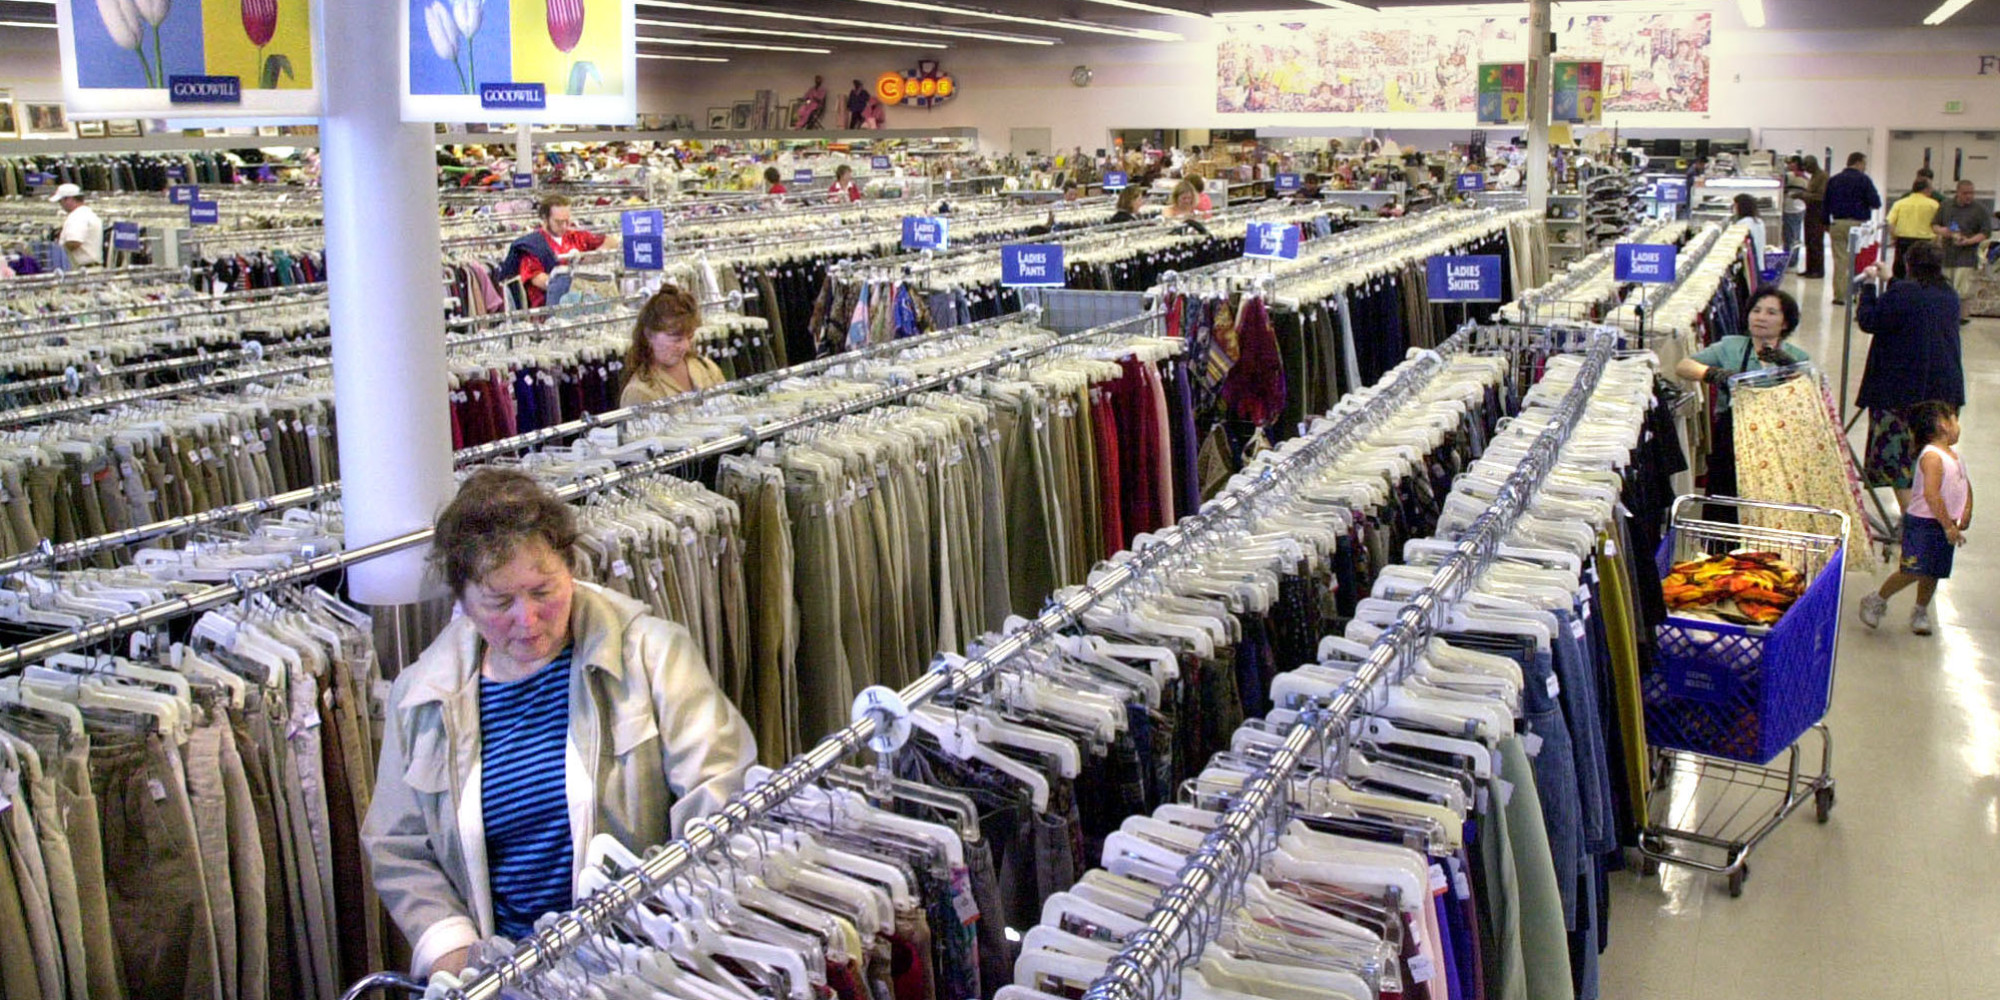 What stores buy used clothes